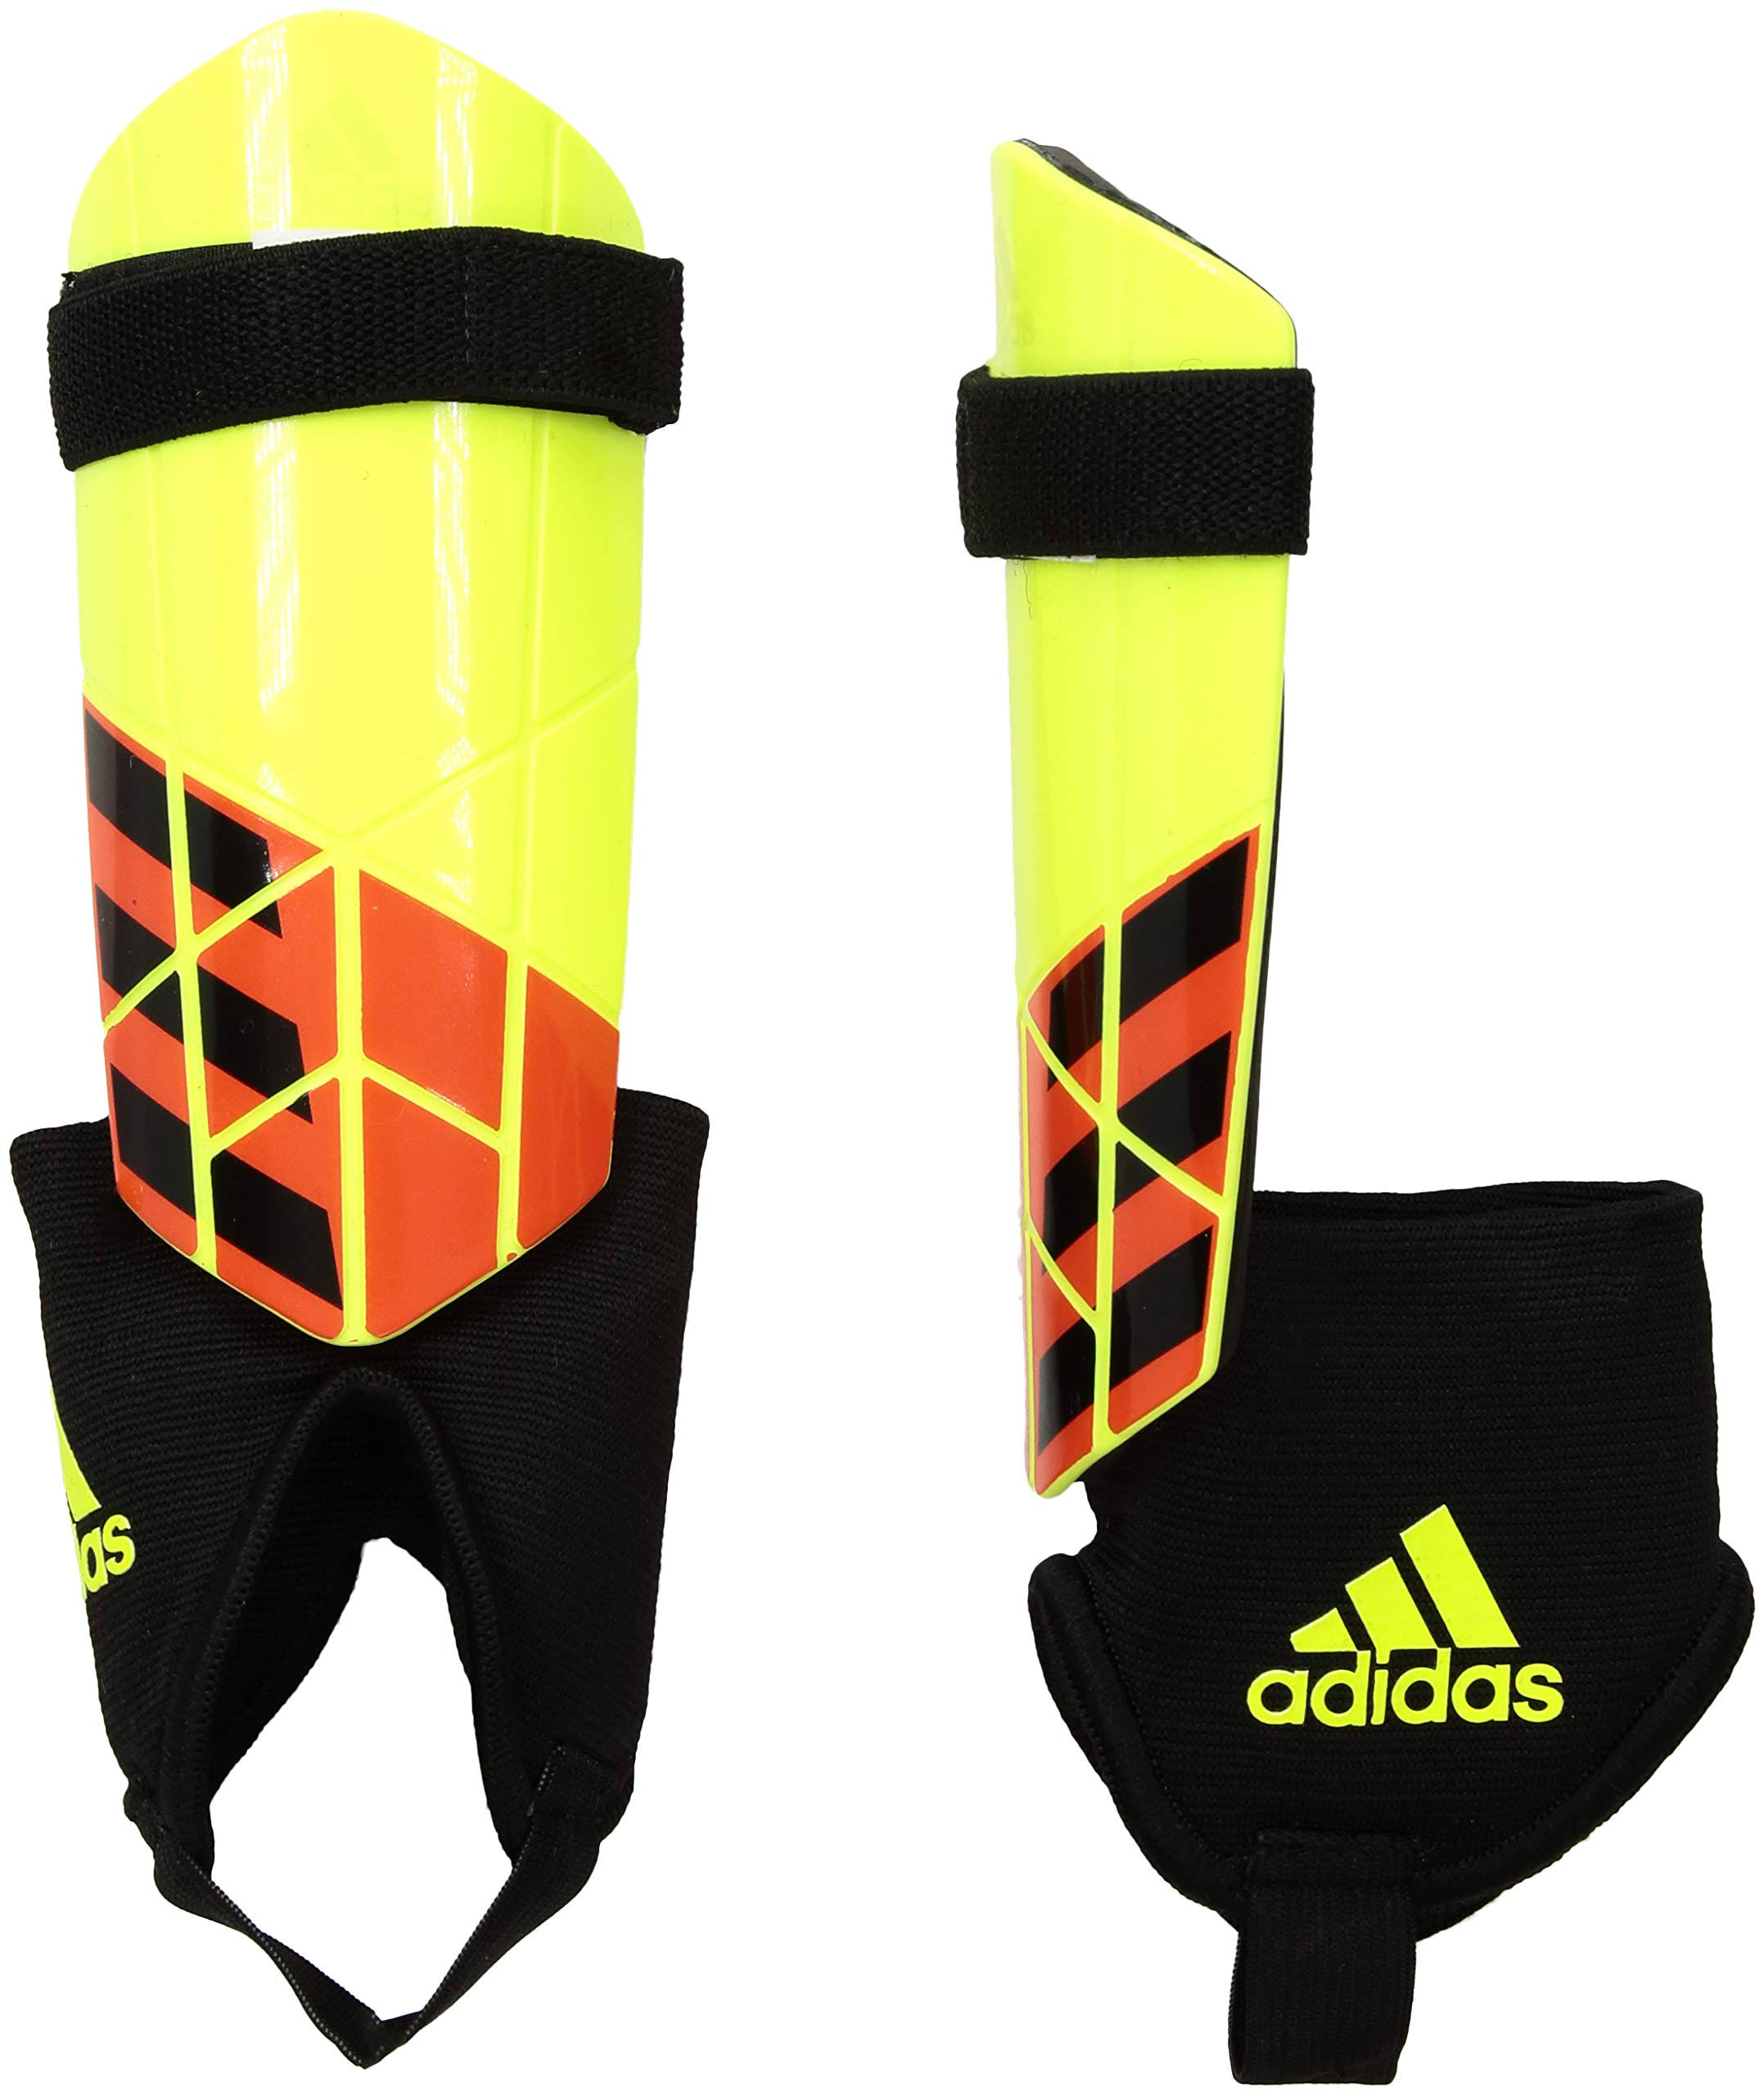 Adidas Youth x Shin Guards Yellow / Small